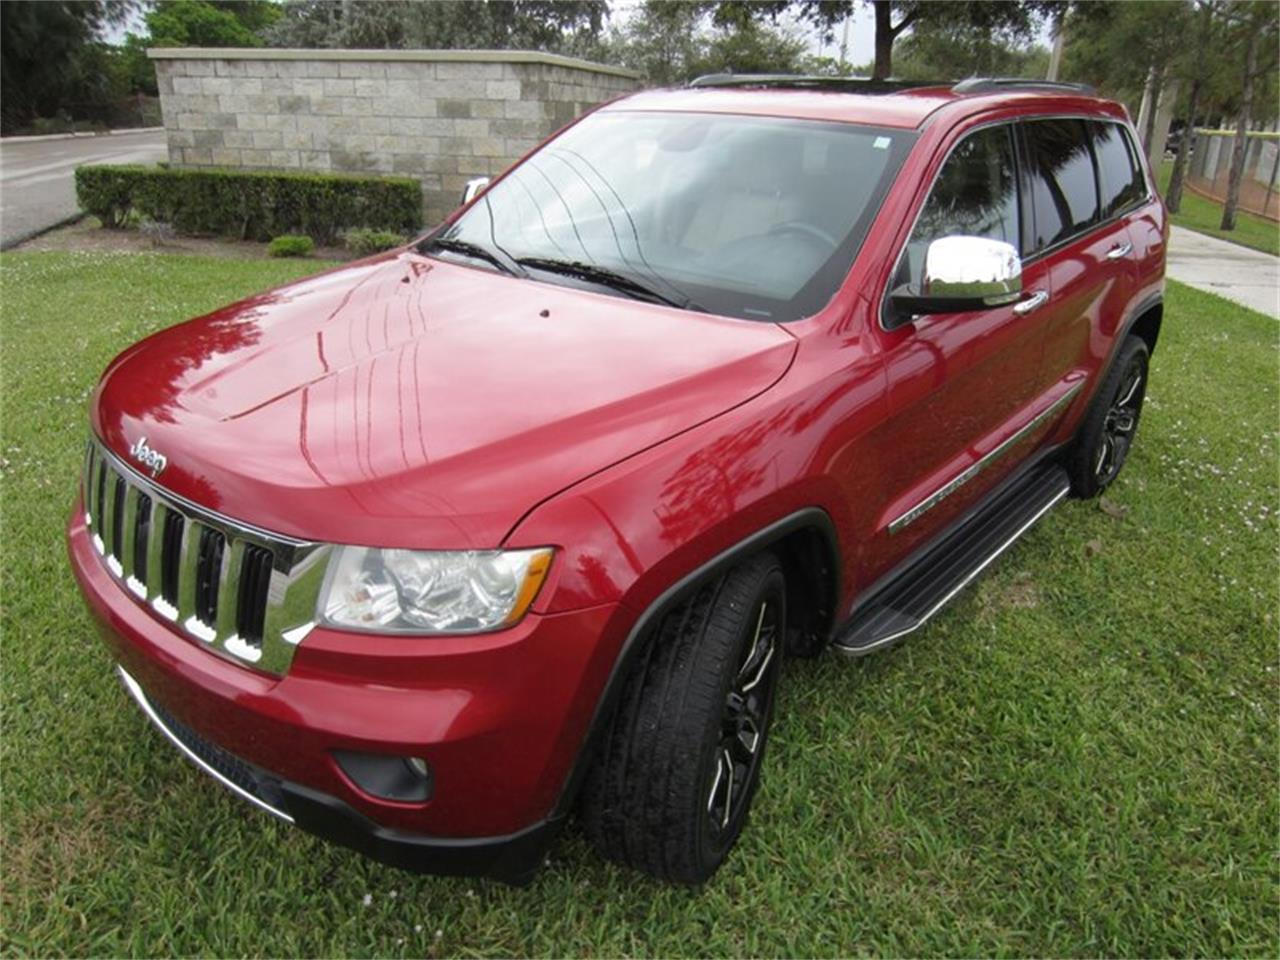 for sale 2011 jeep grand cherokee in delray beach, florida cars - delray beach, fl at geebo